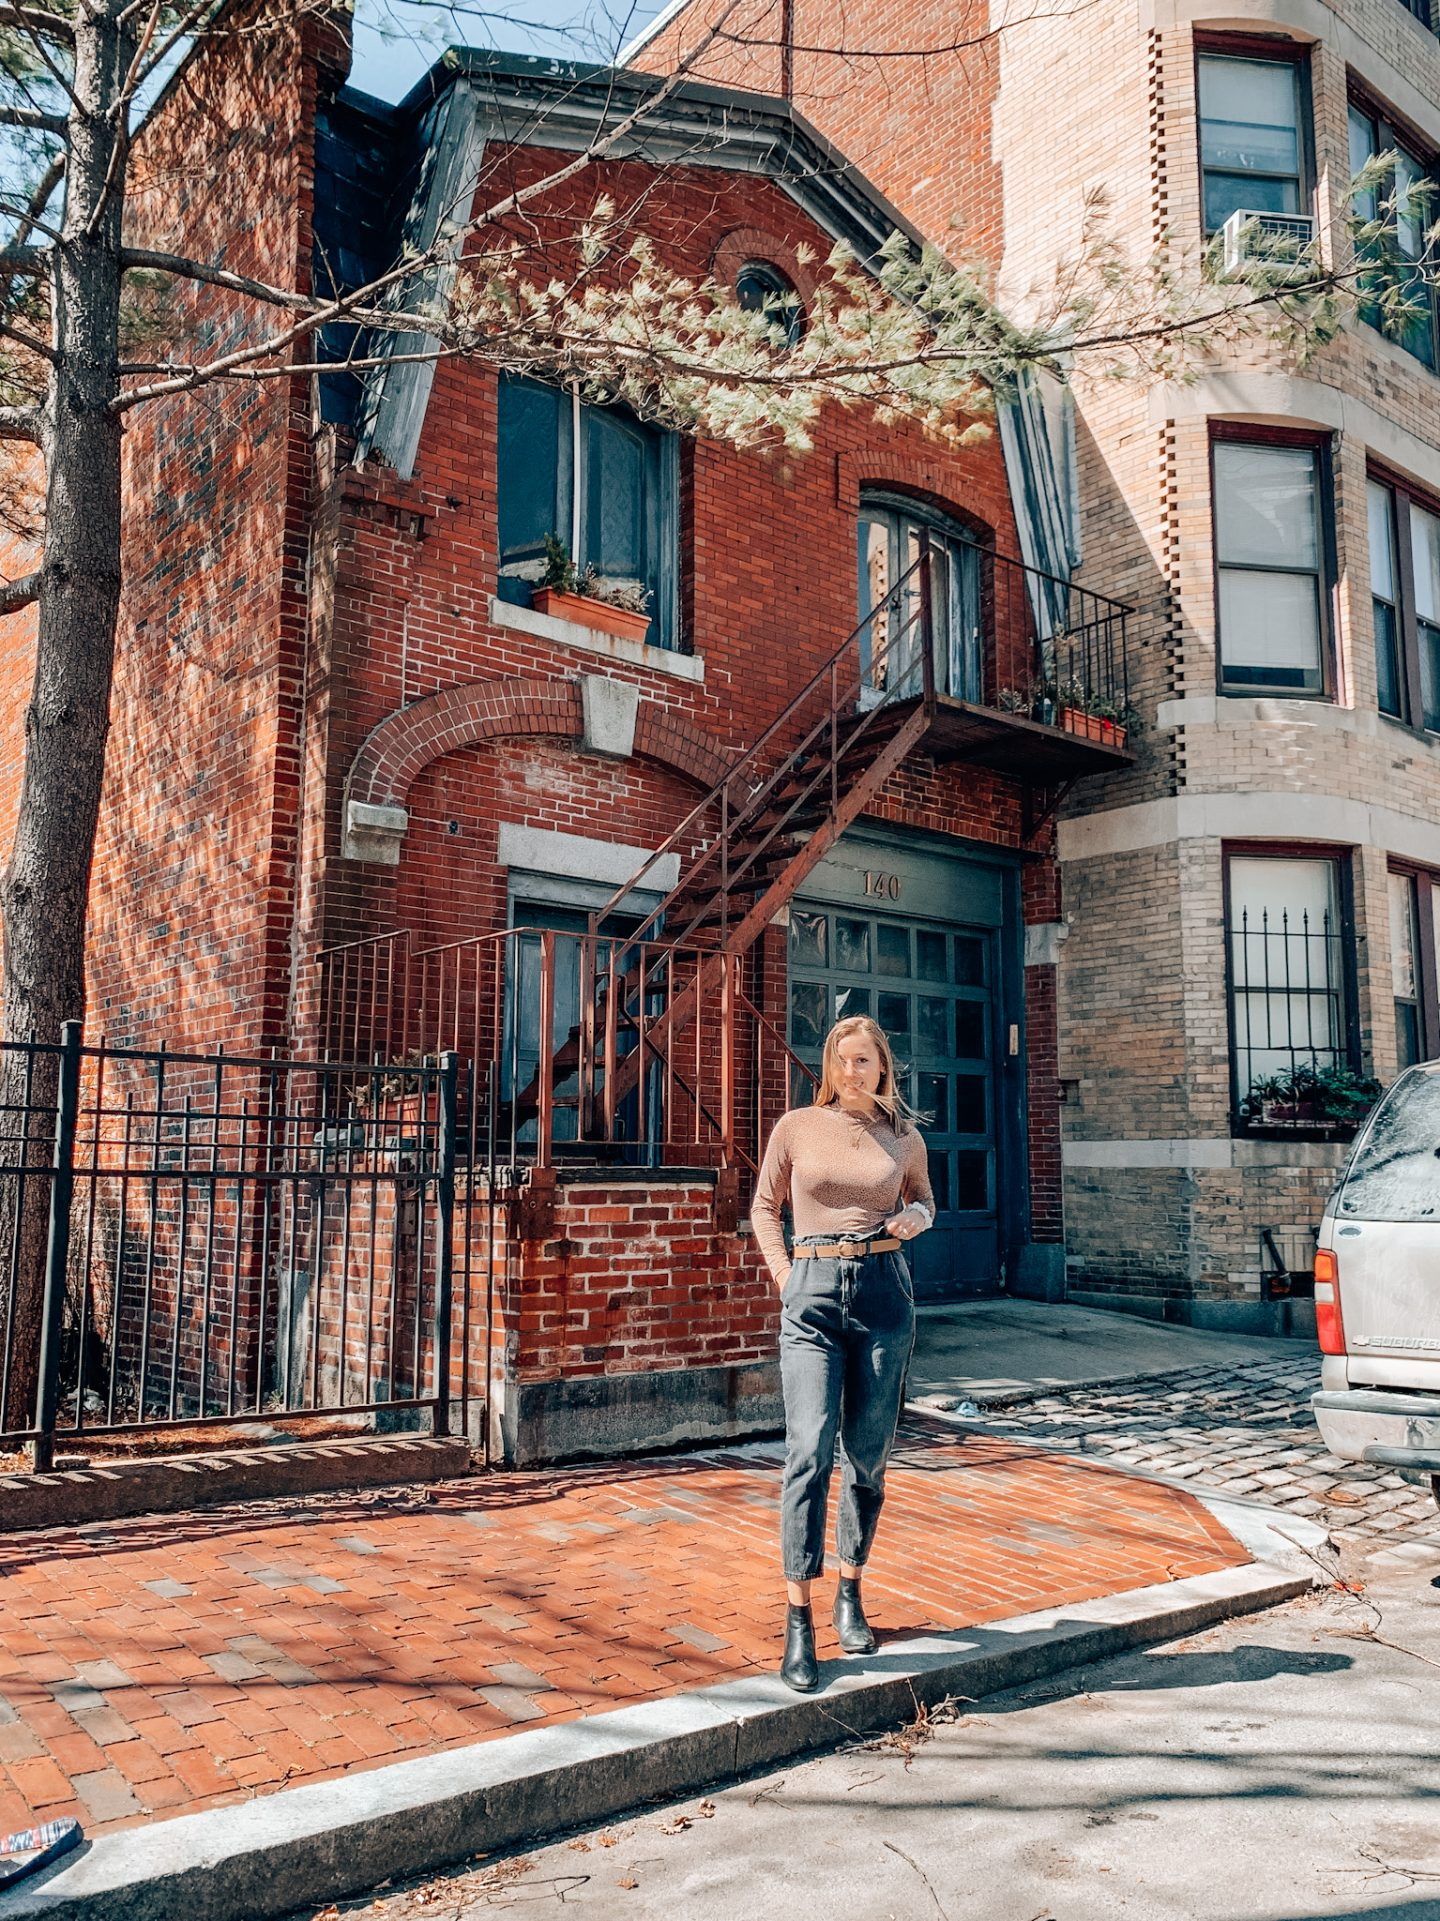 Posing in front of the most Instagrammable house in Boston